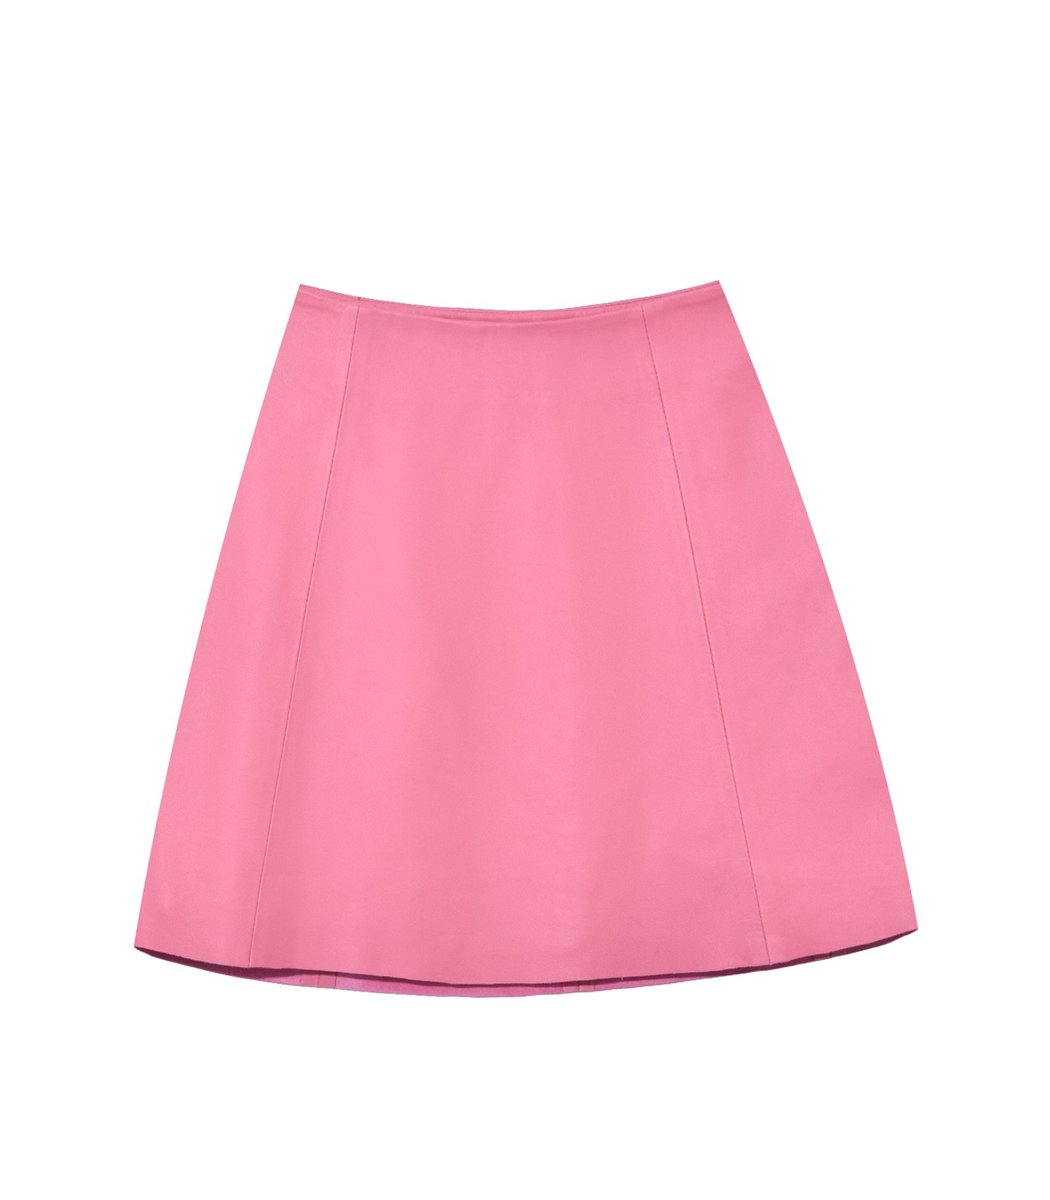 Veda Smooth Leather Circle Skirt in Rosa